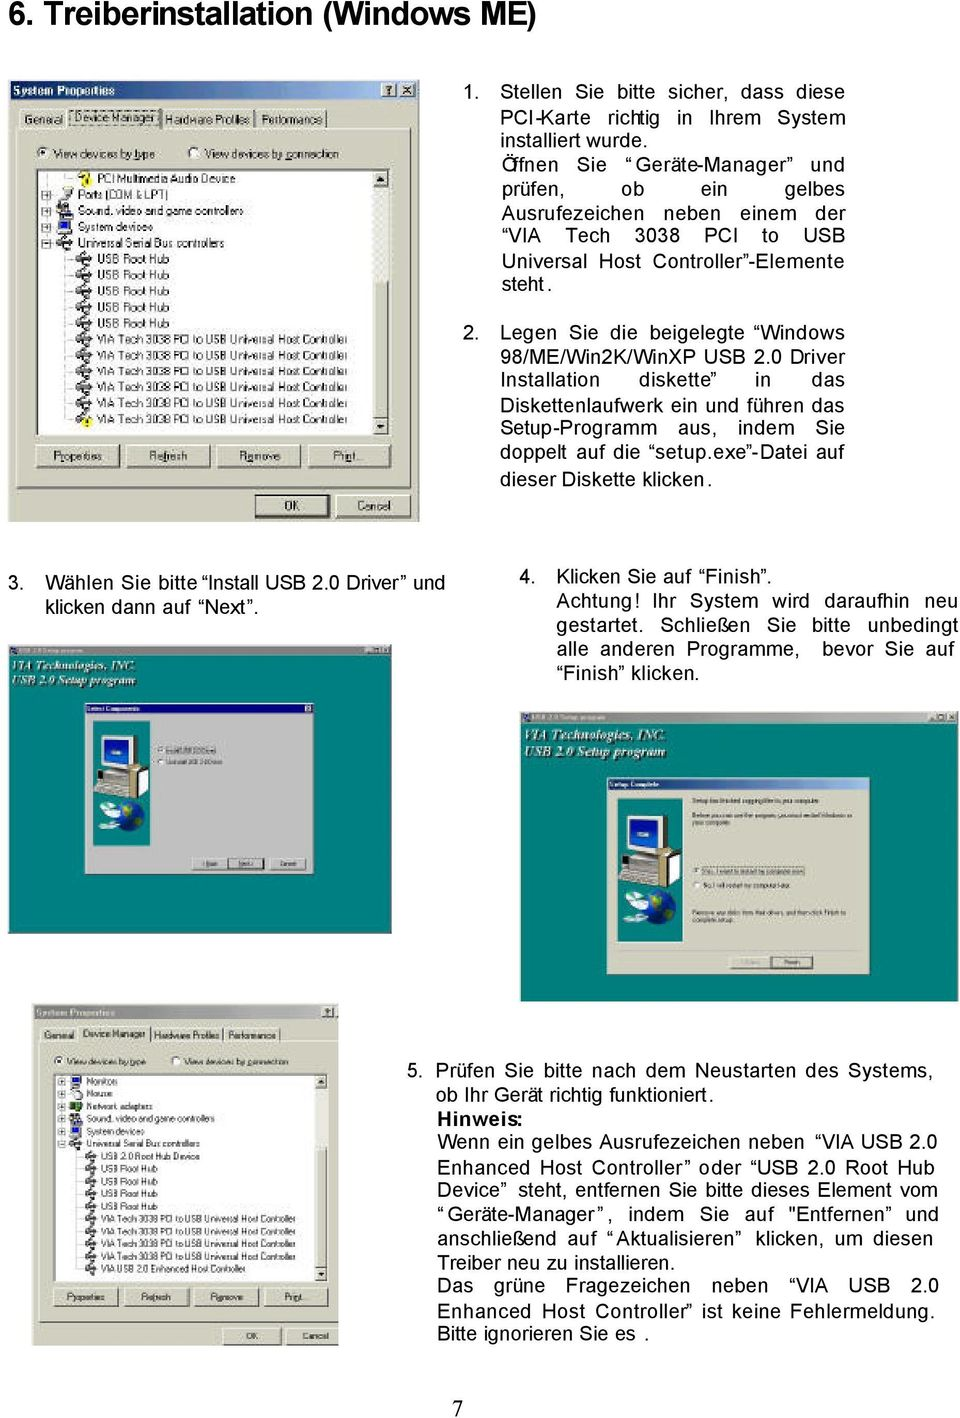 Legen Sie die beigelegte Windows 98/ME/Win2K/WinXP USB 2.0 Driver Installation diskette in das Diskettenlaufwerk ein und führen das Setup-Programm aus, indem Sie doppelt auf die setup.